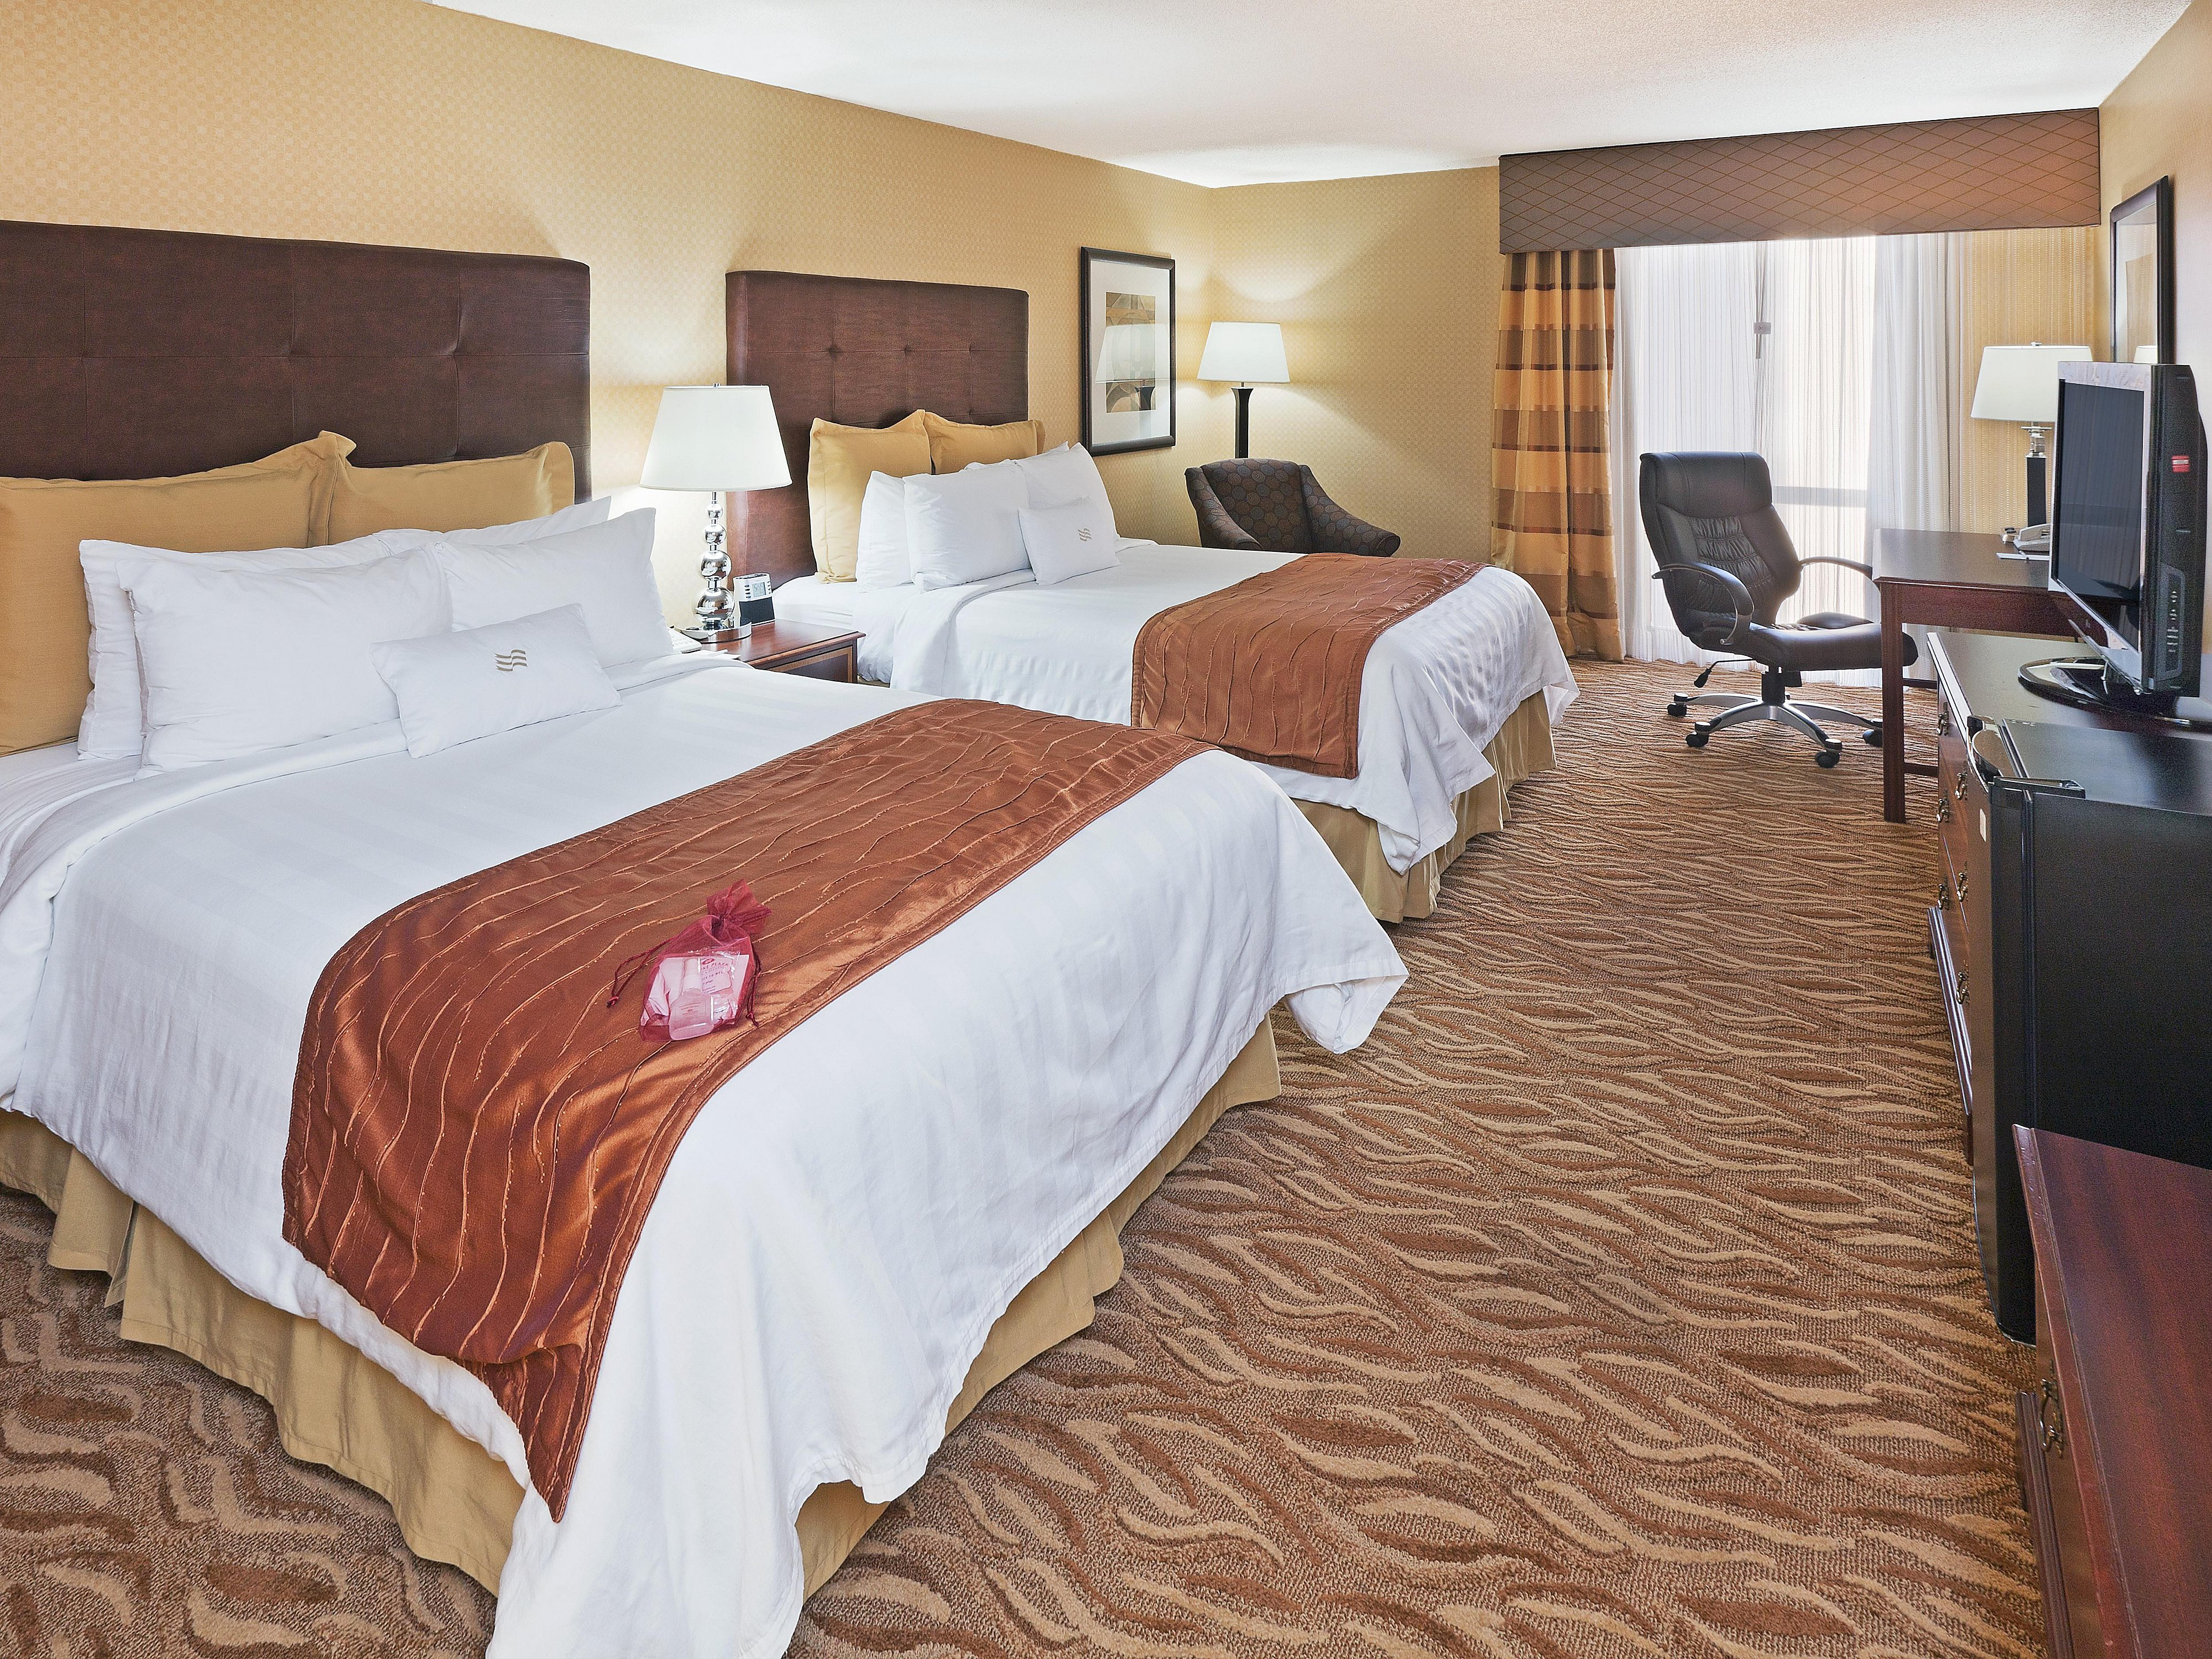 Hotels in Downtown Dallas, TX   Crowne Plaza Downtown Dallas